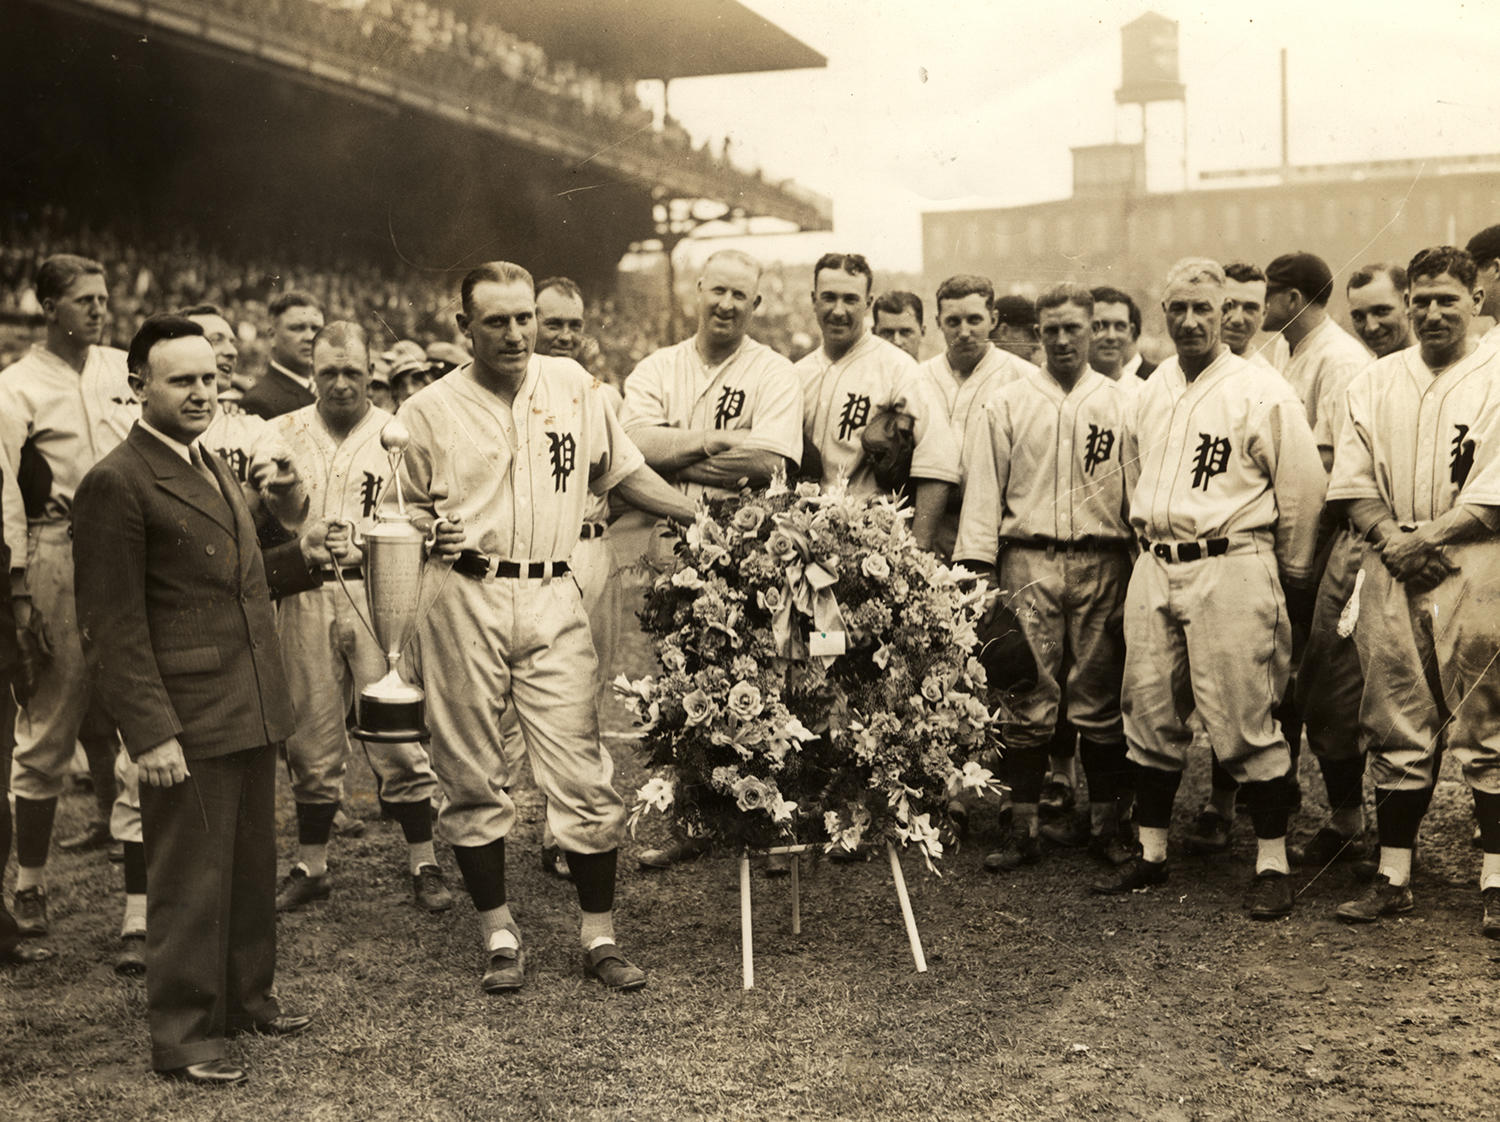 Chuck Klein receives the National League MVP Award in 1932, surrounded by his Philadelphia Phillies teammates. (National Baseball Hall of Fame)